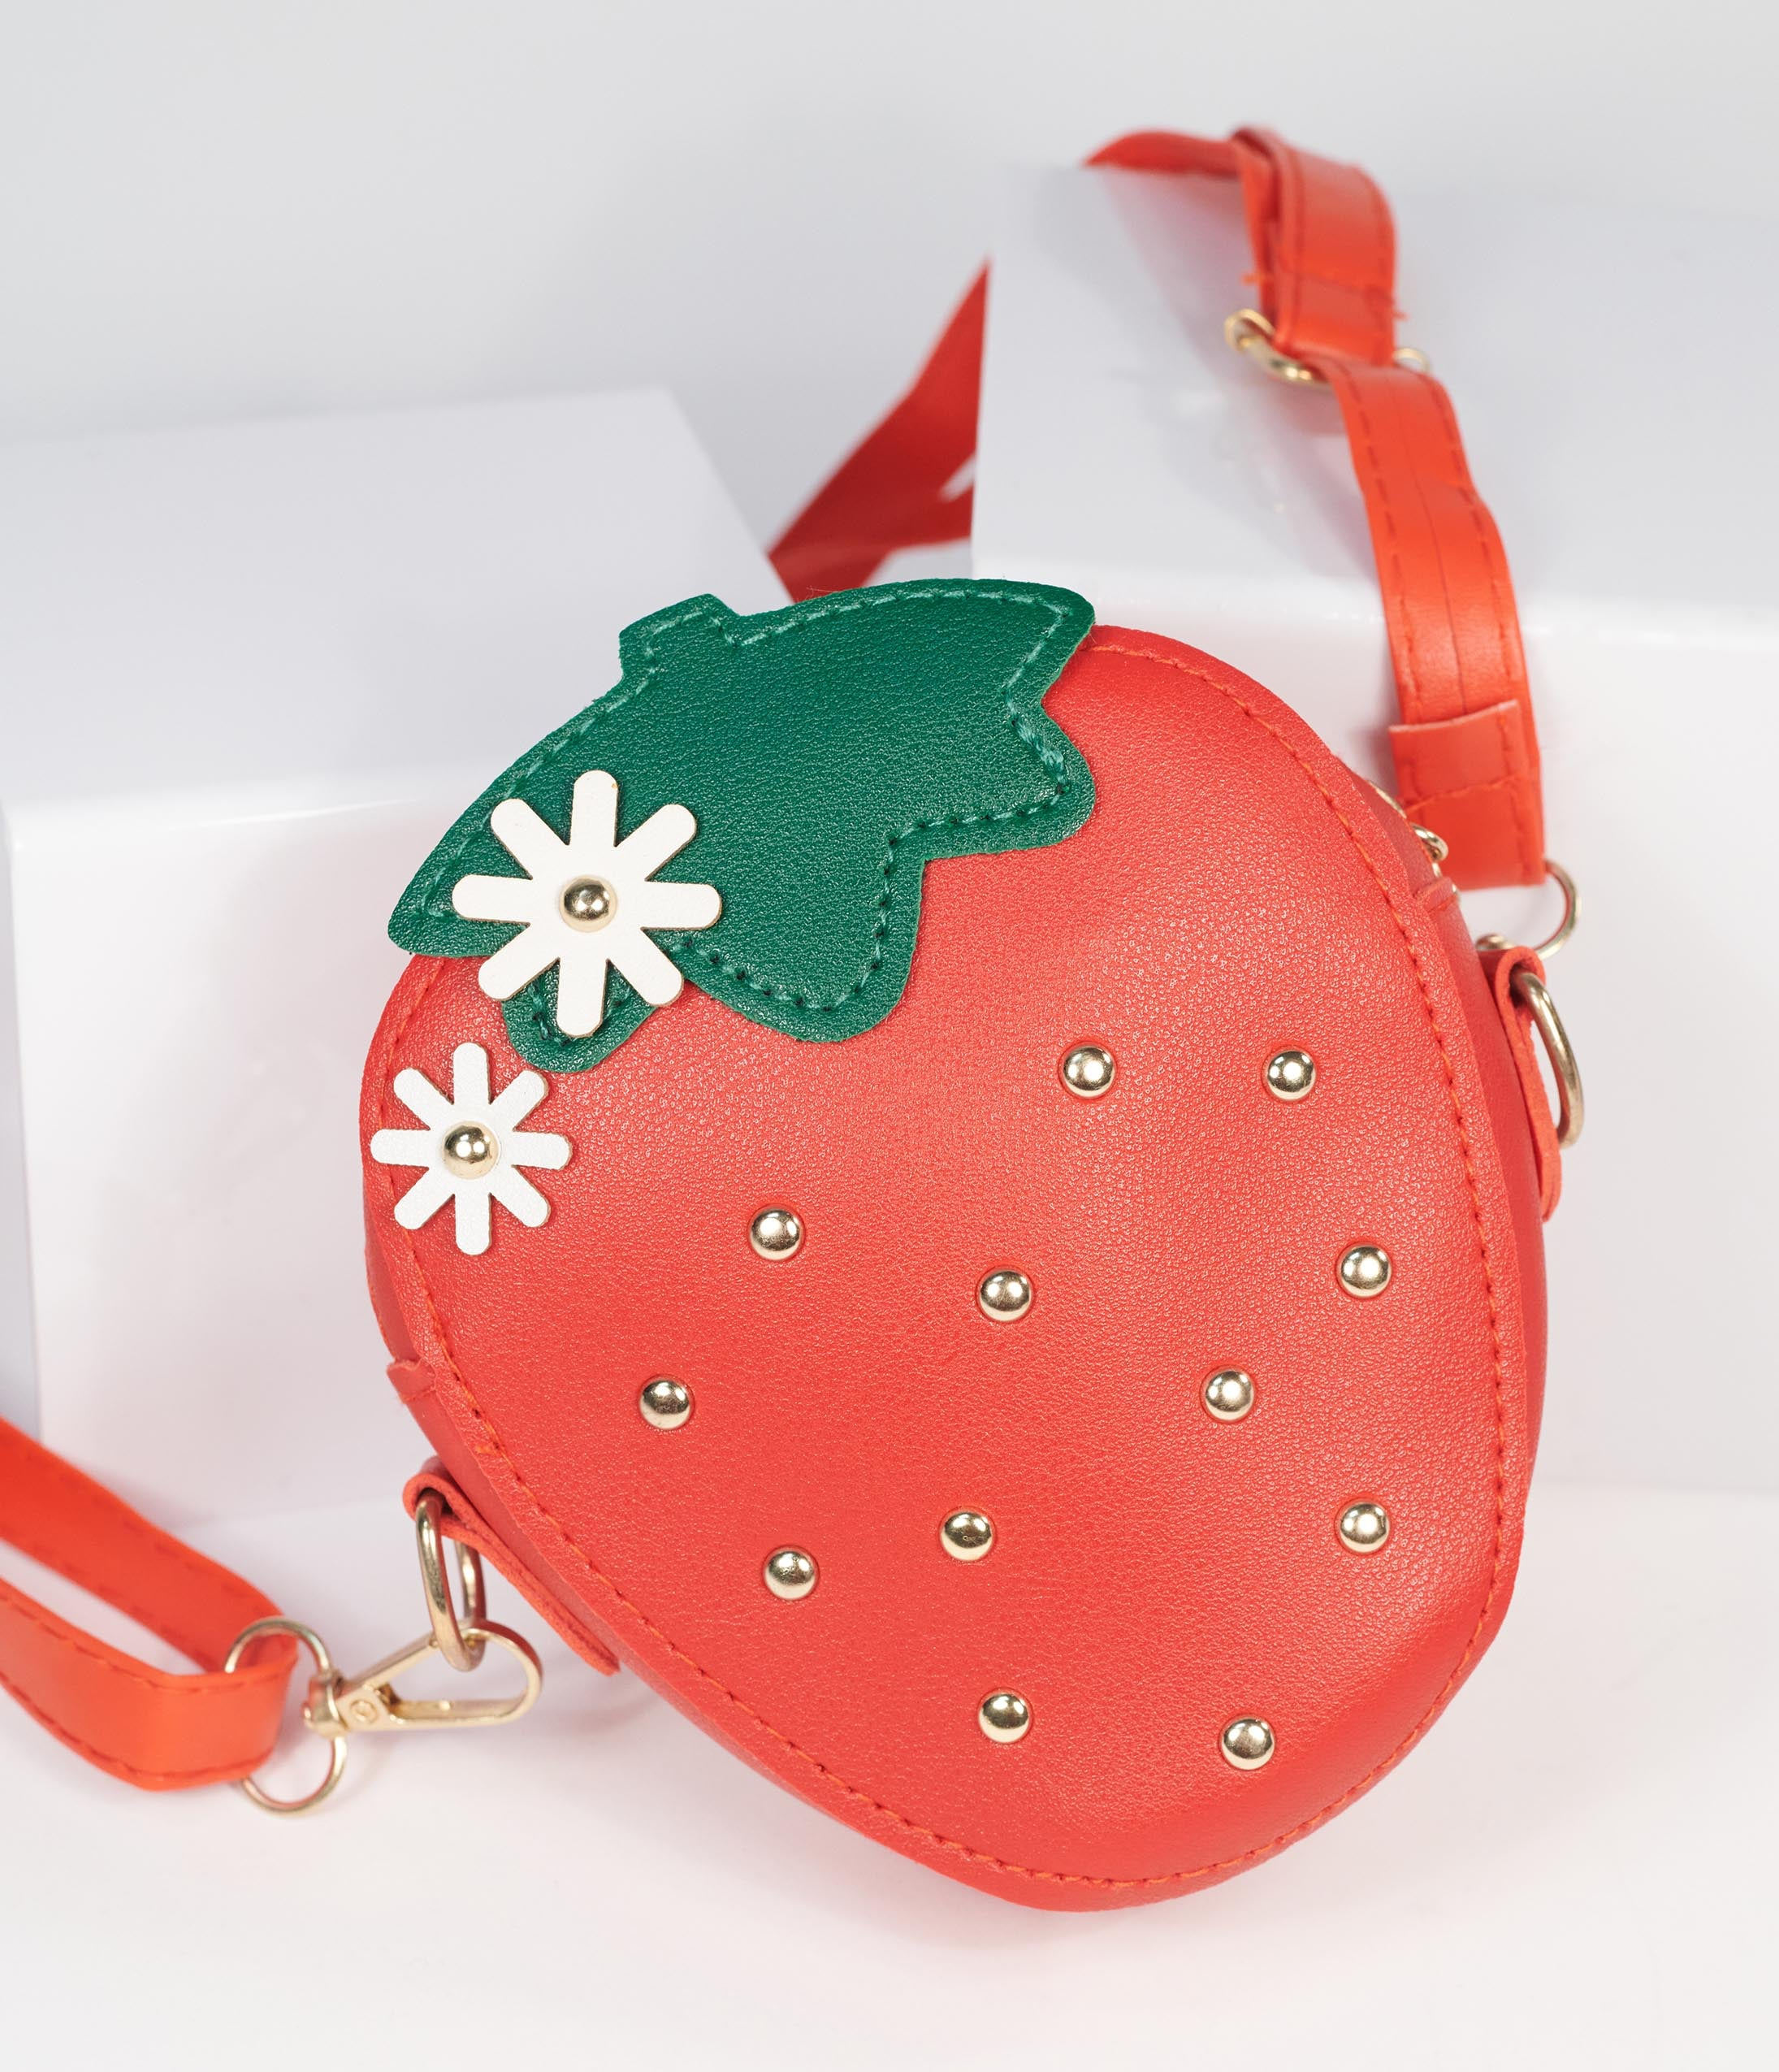 1950s Handbags, Purses, and Evening Bag Styles Red Strawberry Mini Coin Purse $38.00 AT vintagedancer.com